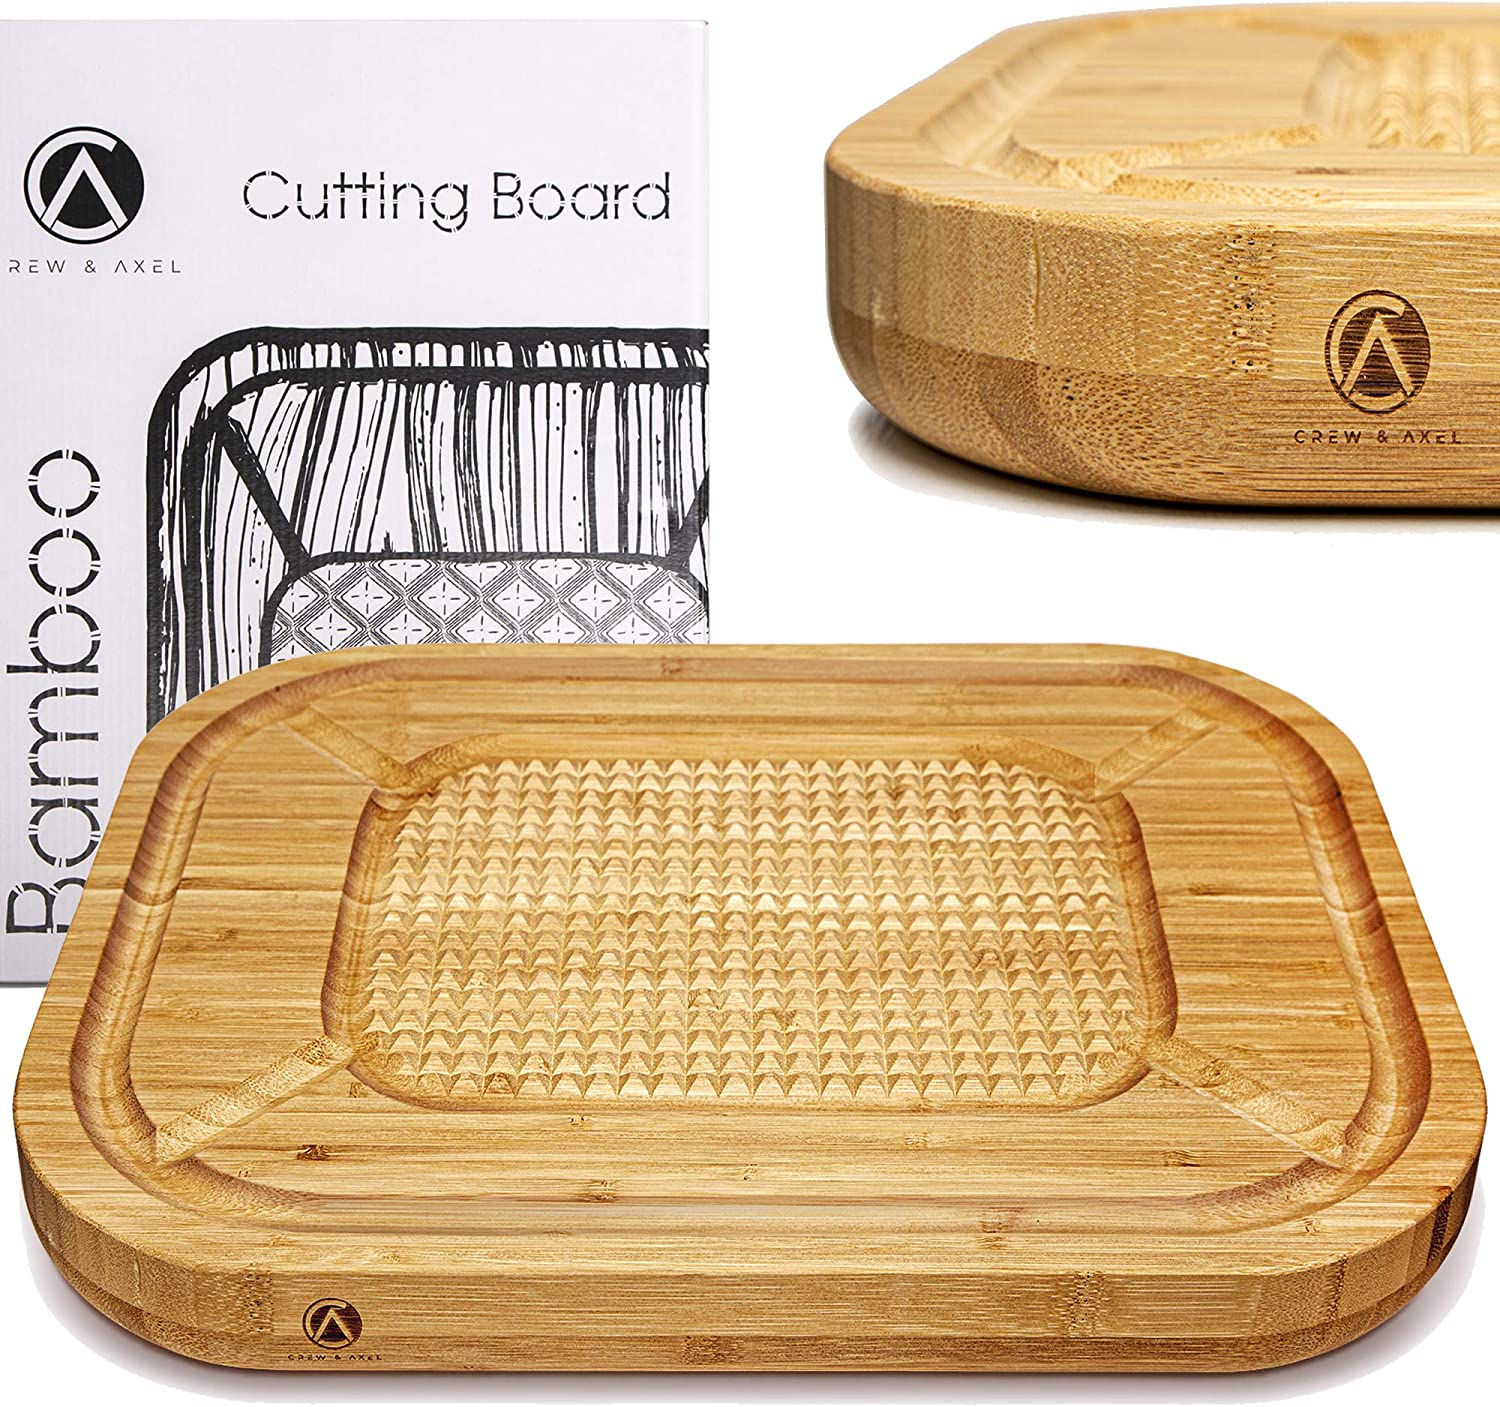 "Crew Axel Bamboo Cutting Board Extra Large Thick Butcher Block (17"" x 13"" x 1.5"") 100% Natural Countertop Carving Board - Reversible Anti Slip with Deep Juice Drip Grooves & Spikes -Thick Serving Tray"